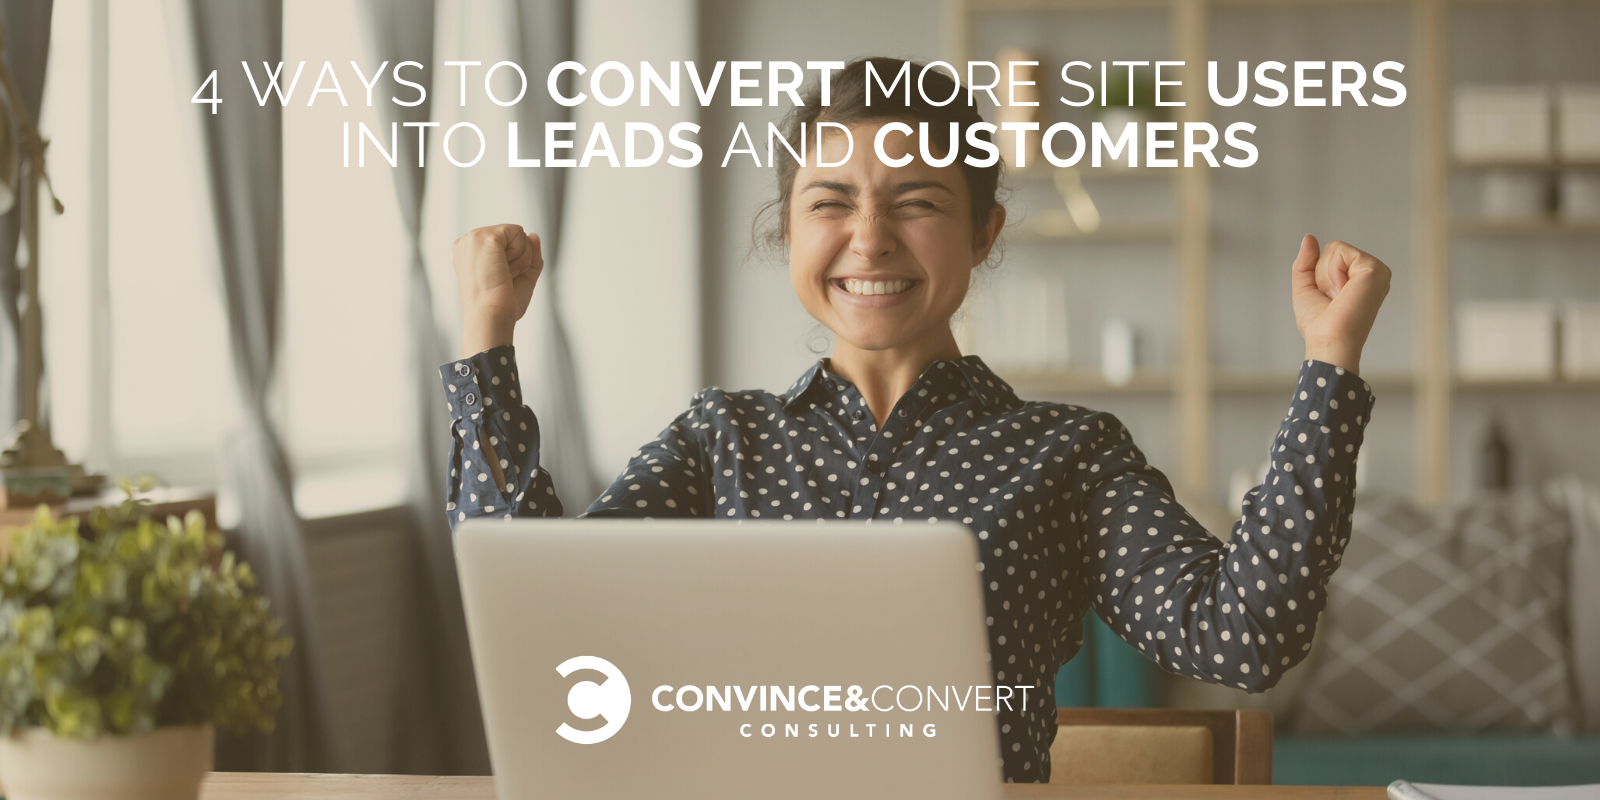 4 Ways to Convert More Site Users into Leads and Customers: Examples, Tools and Tactics